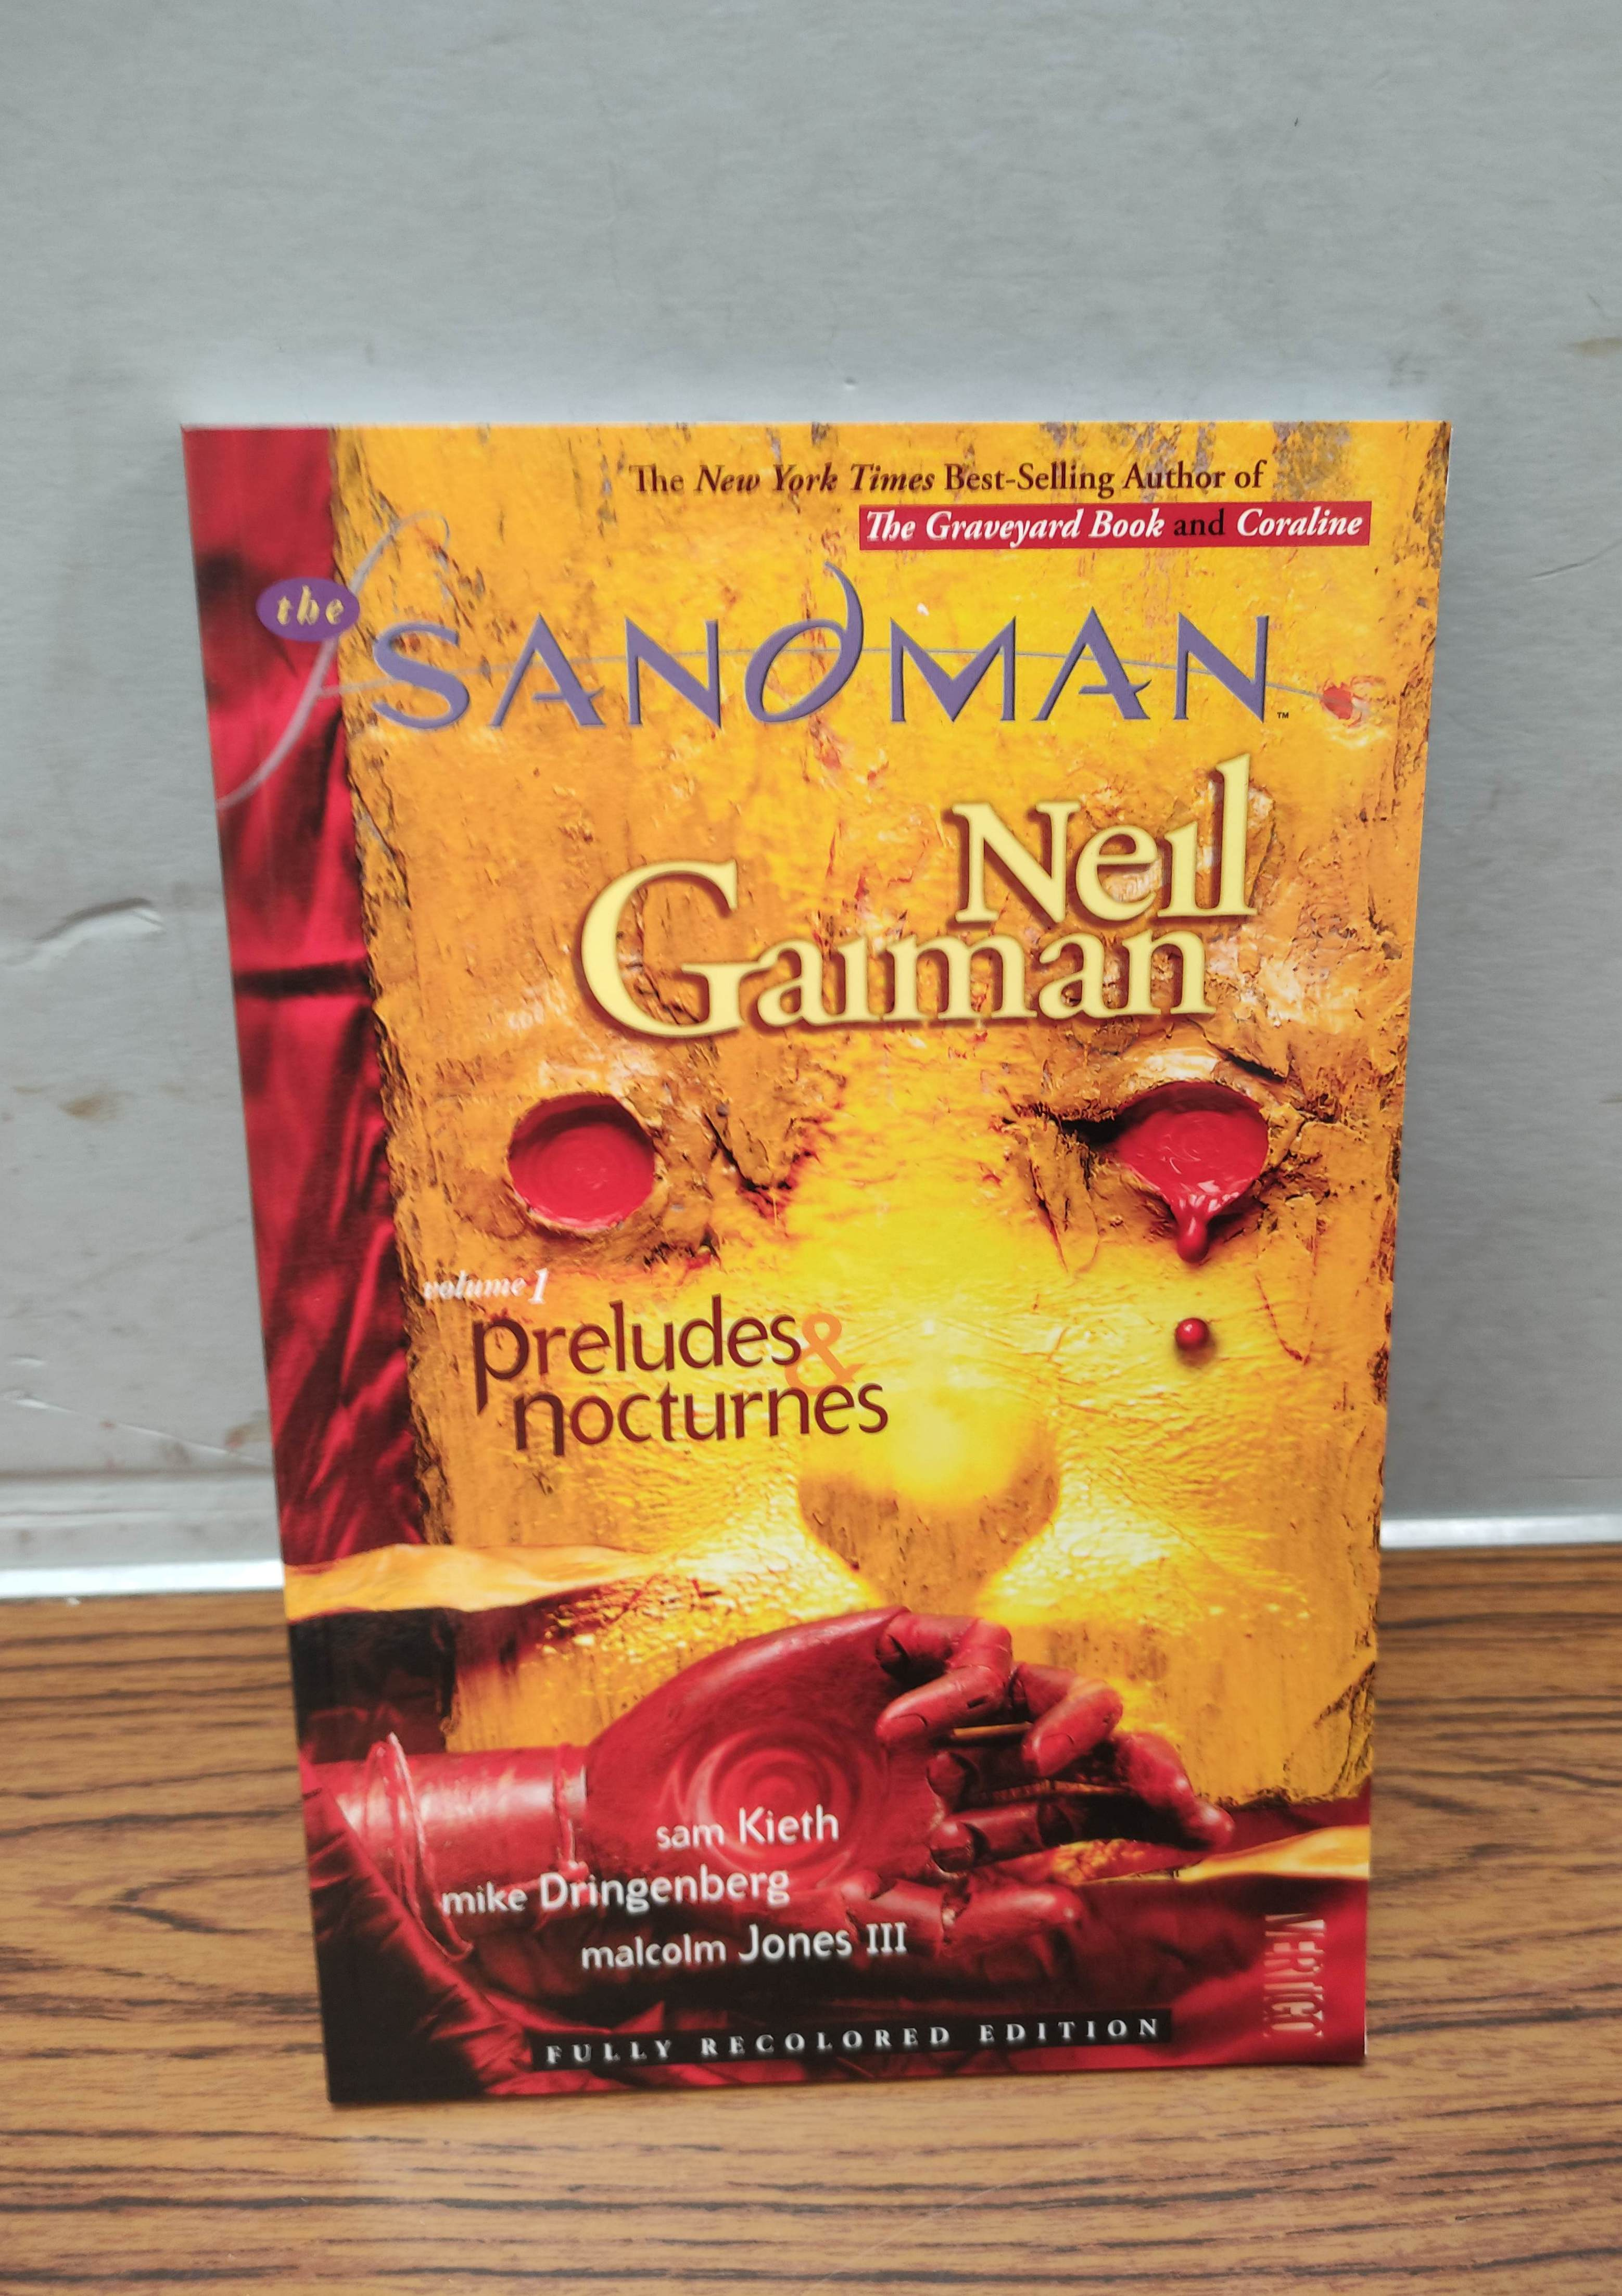 GAIMAN NEIL.The Sandman. Vols. 1 to 10 in wrappers & slip case; also 5 others, Neil Gaiman. - Image 6 of 17